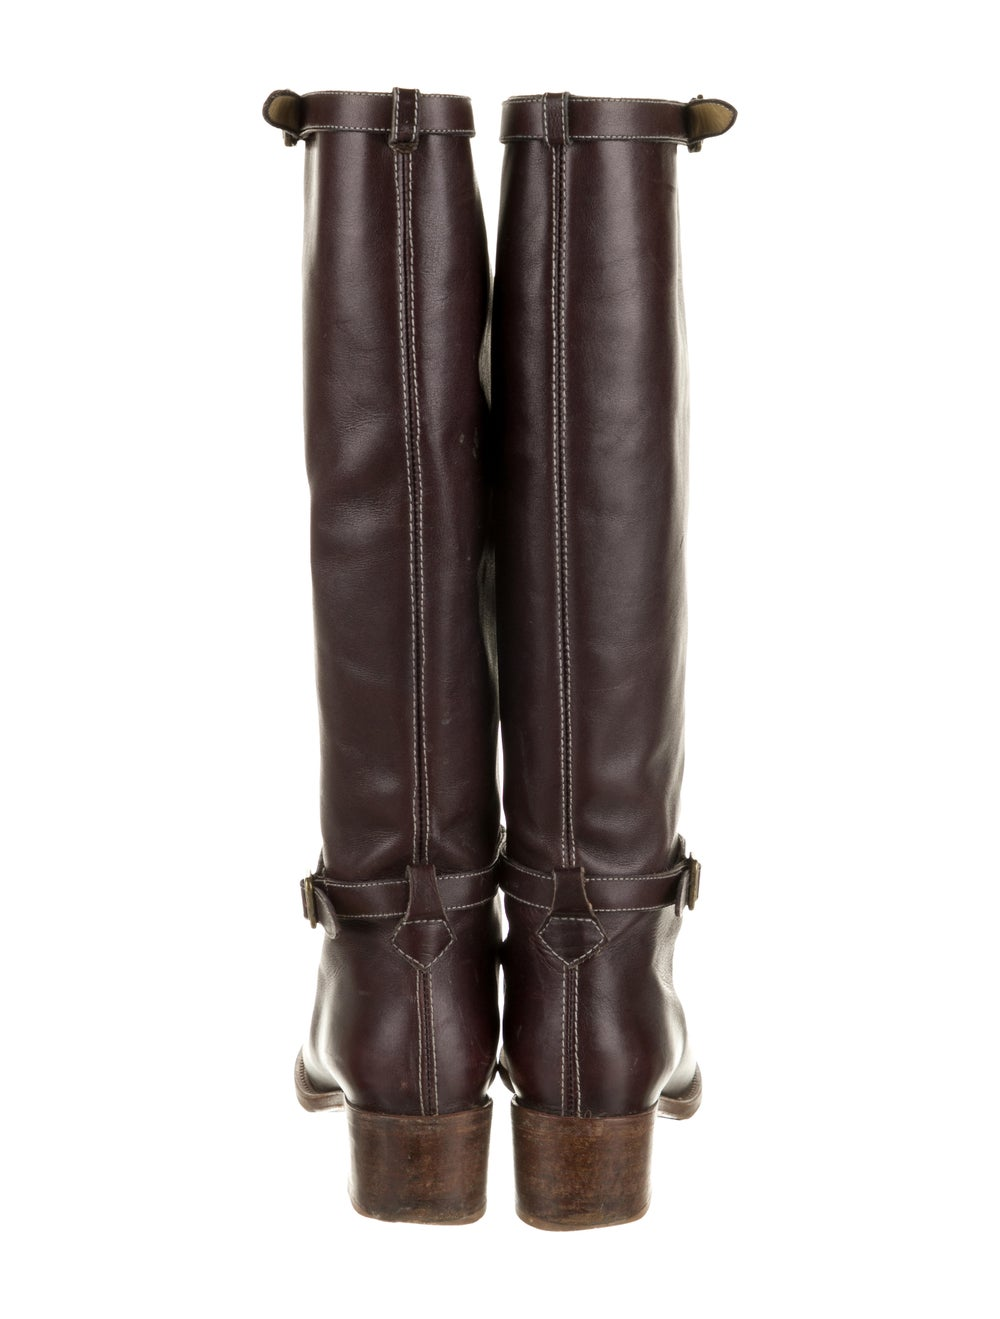 Chloé Leather Knee-High Boots Brown - image 4